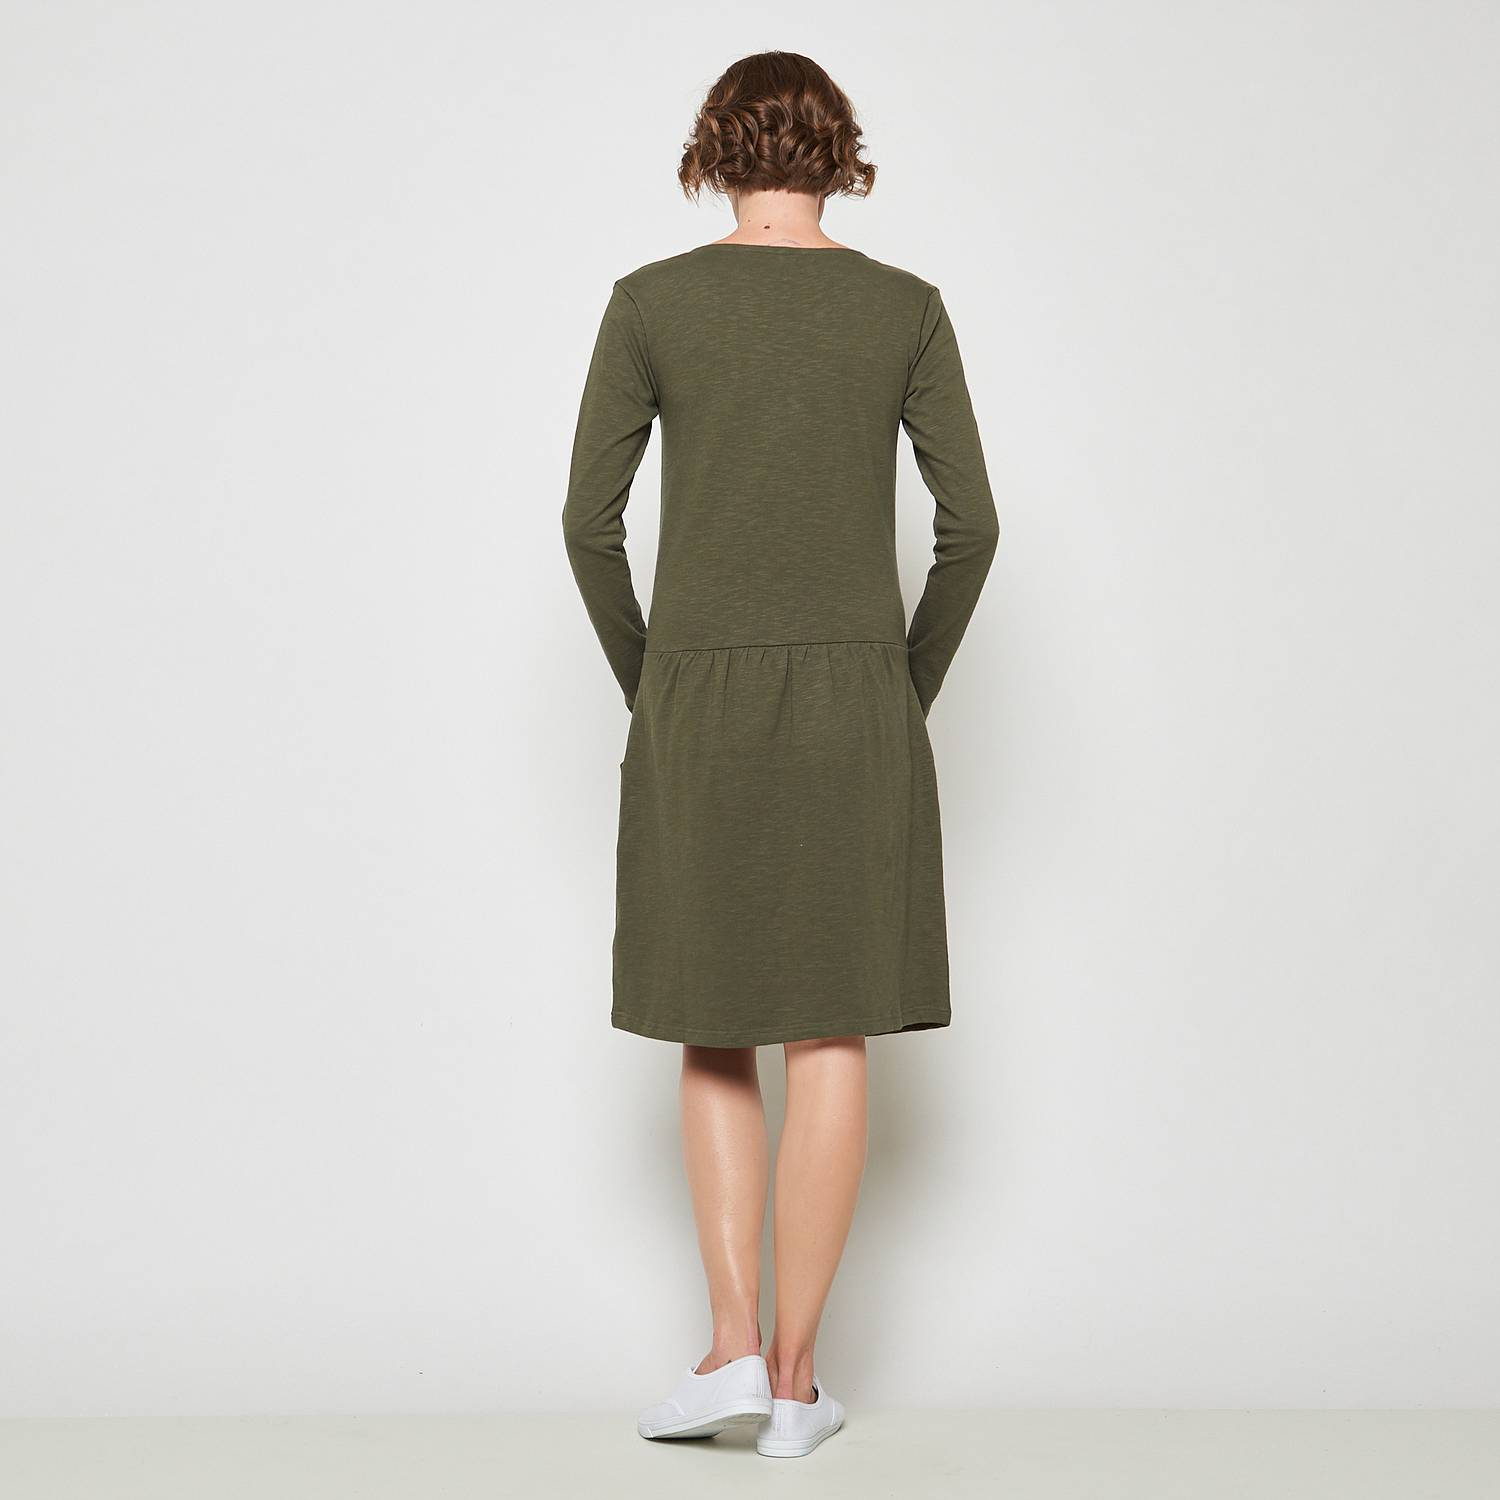 Midi dress Sarir olive